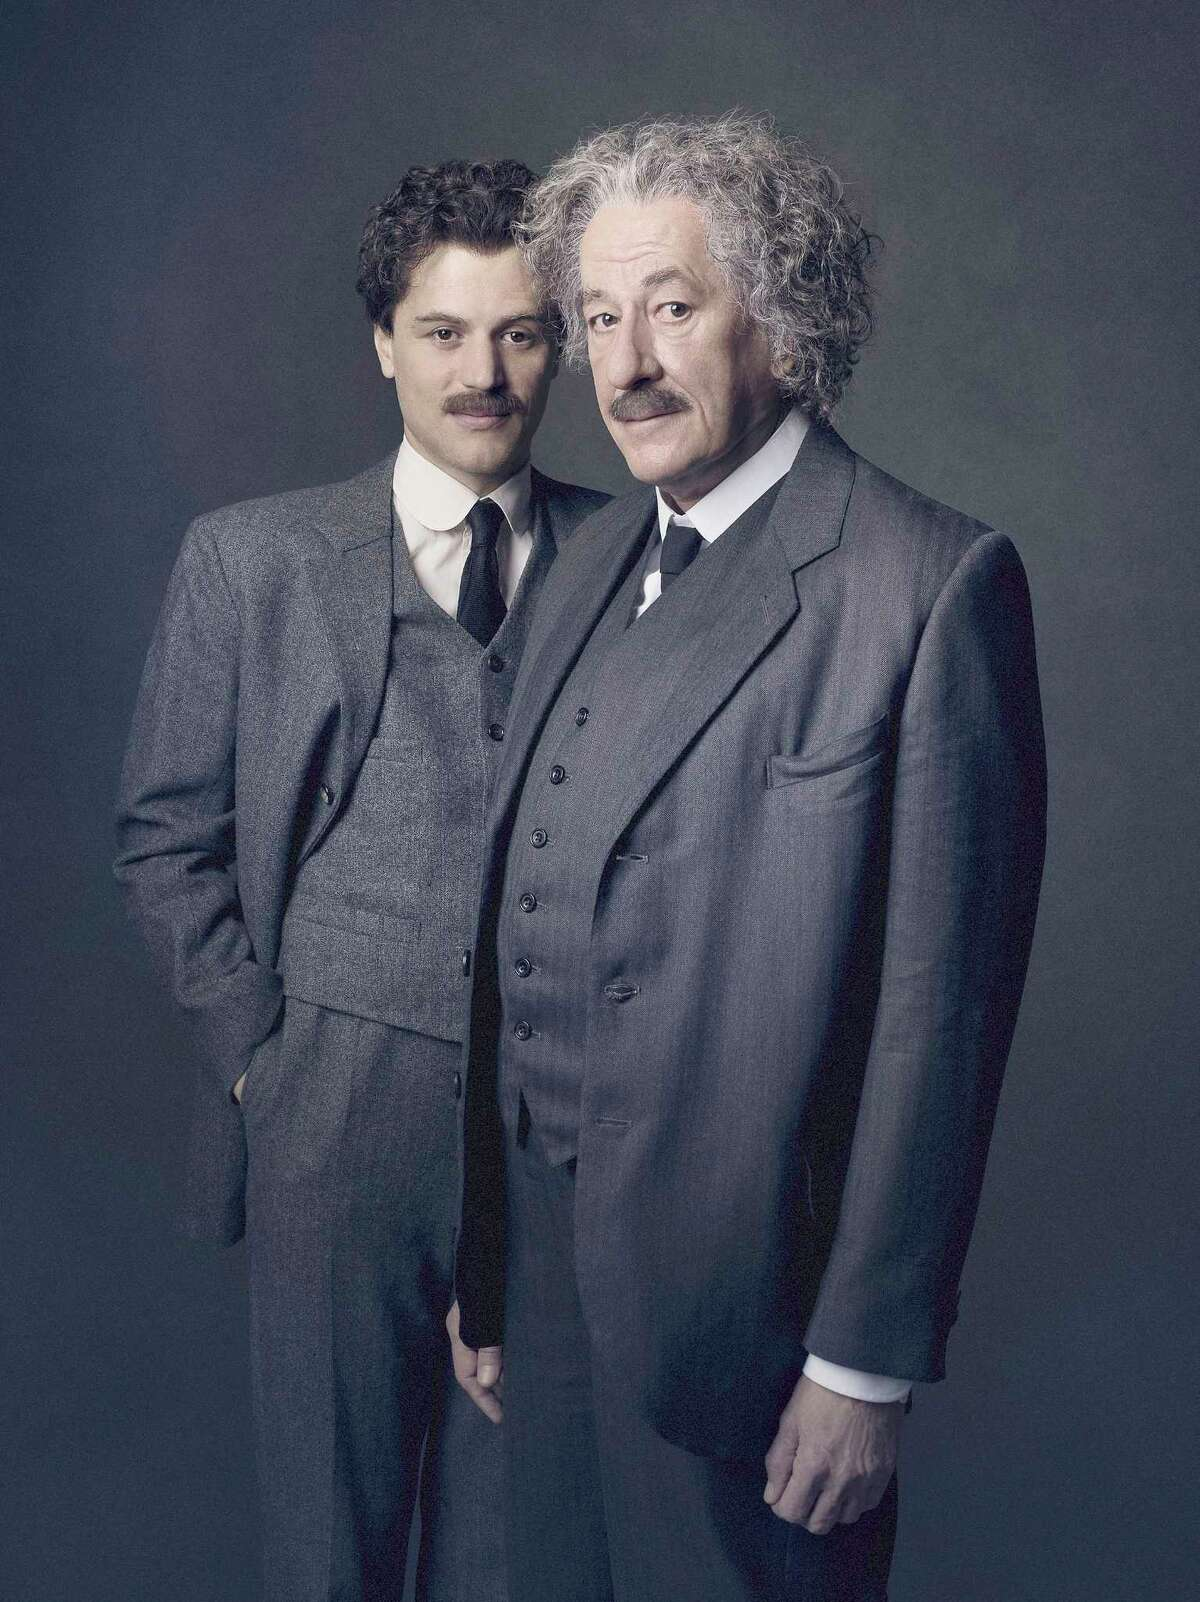 Johnny Flynn, left, plays Albert Einstein as a young man and Academy Award winning Geoffrey Rush plays him as an older man in National Geographic's new series,